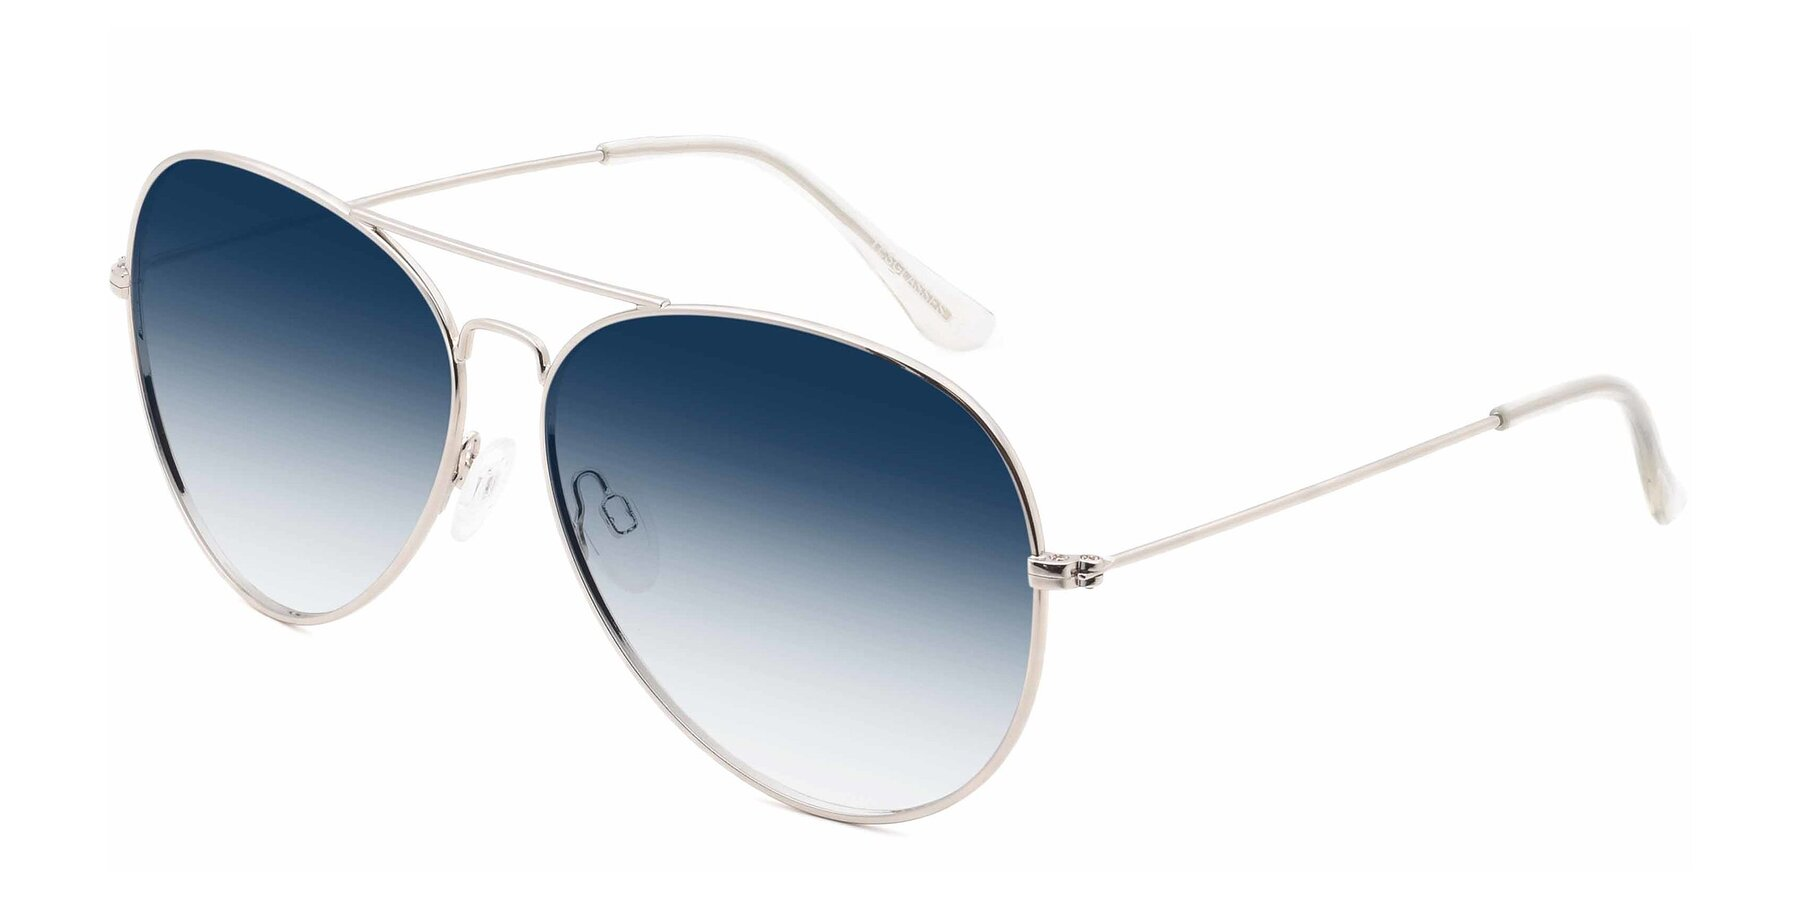 Angle of SSR179 in Silver with Blue Gradient Lenses